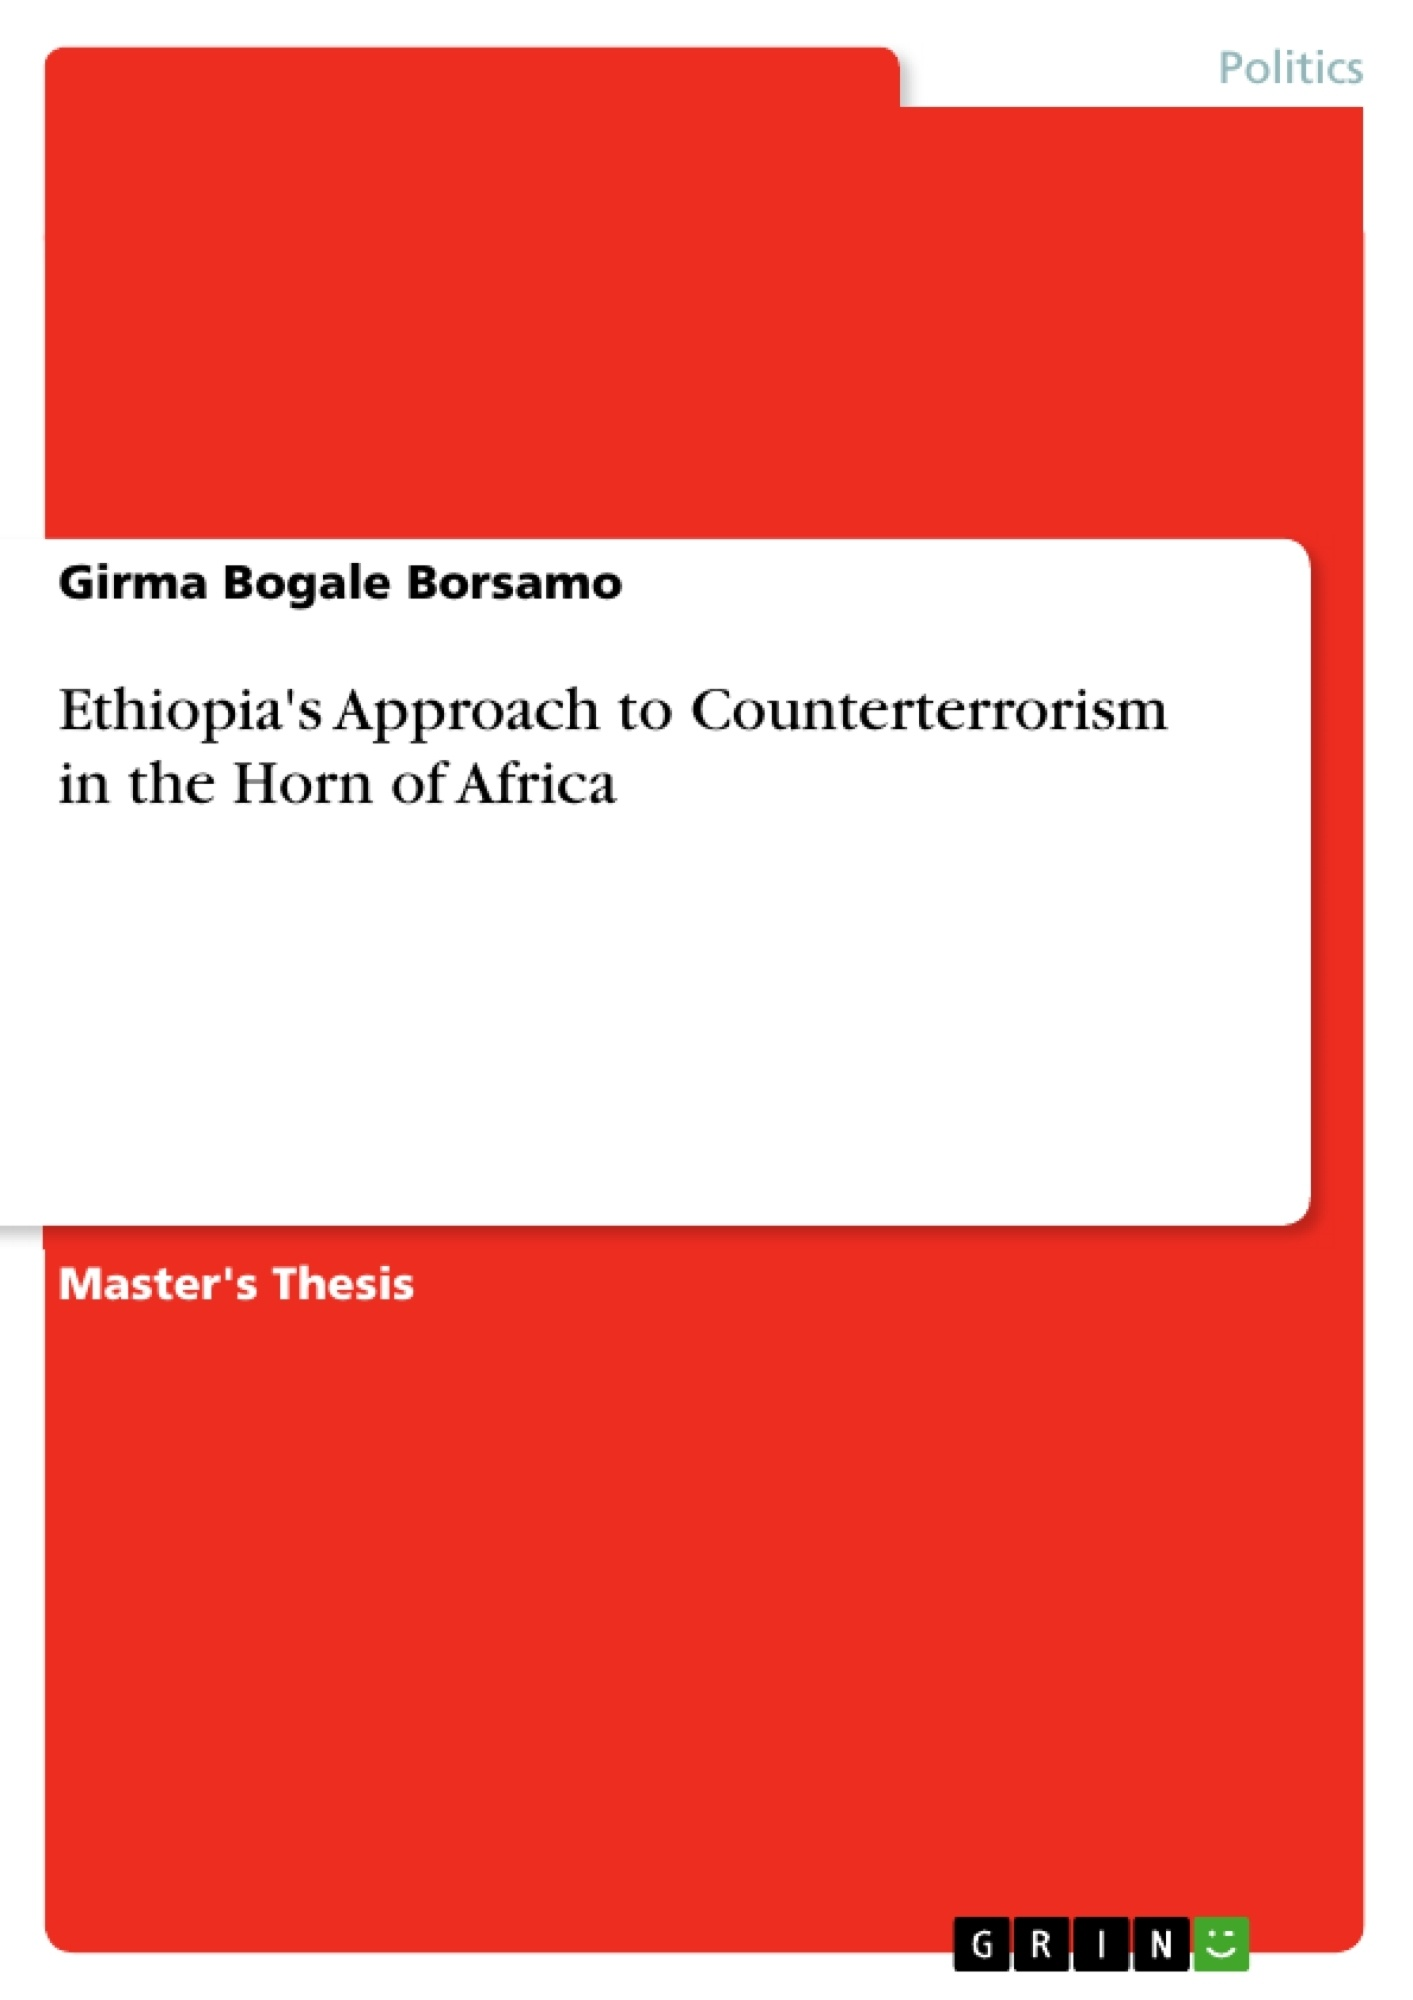 Title: Ethiopia's Approach to Counterterrorism in the Horn of Africa